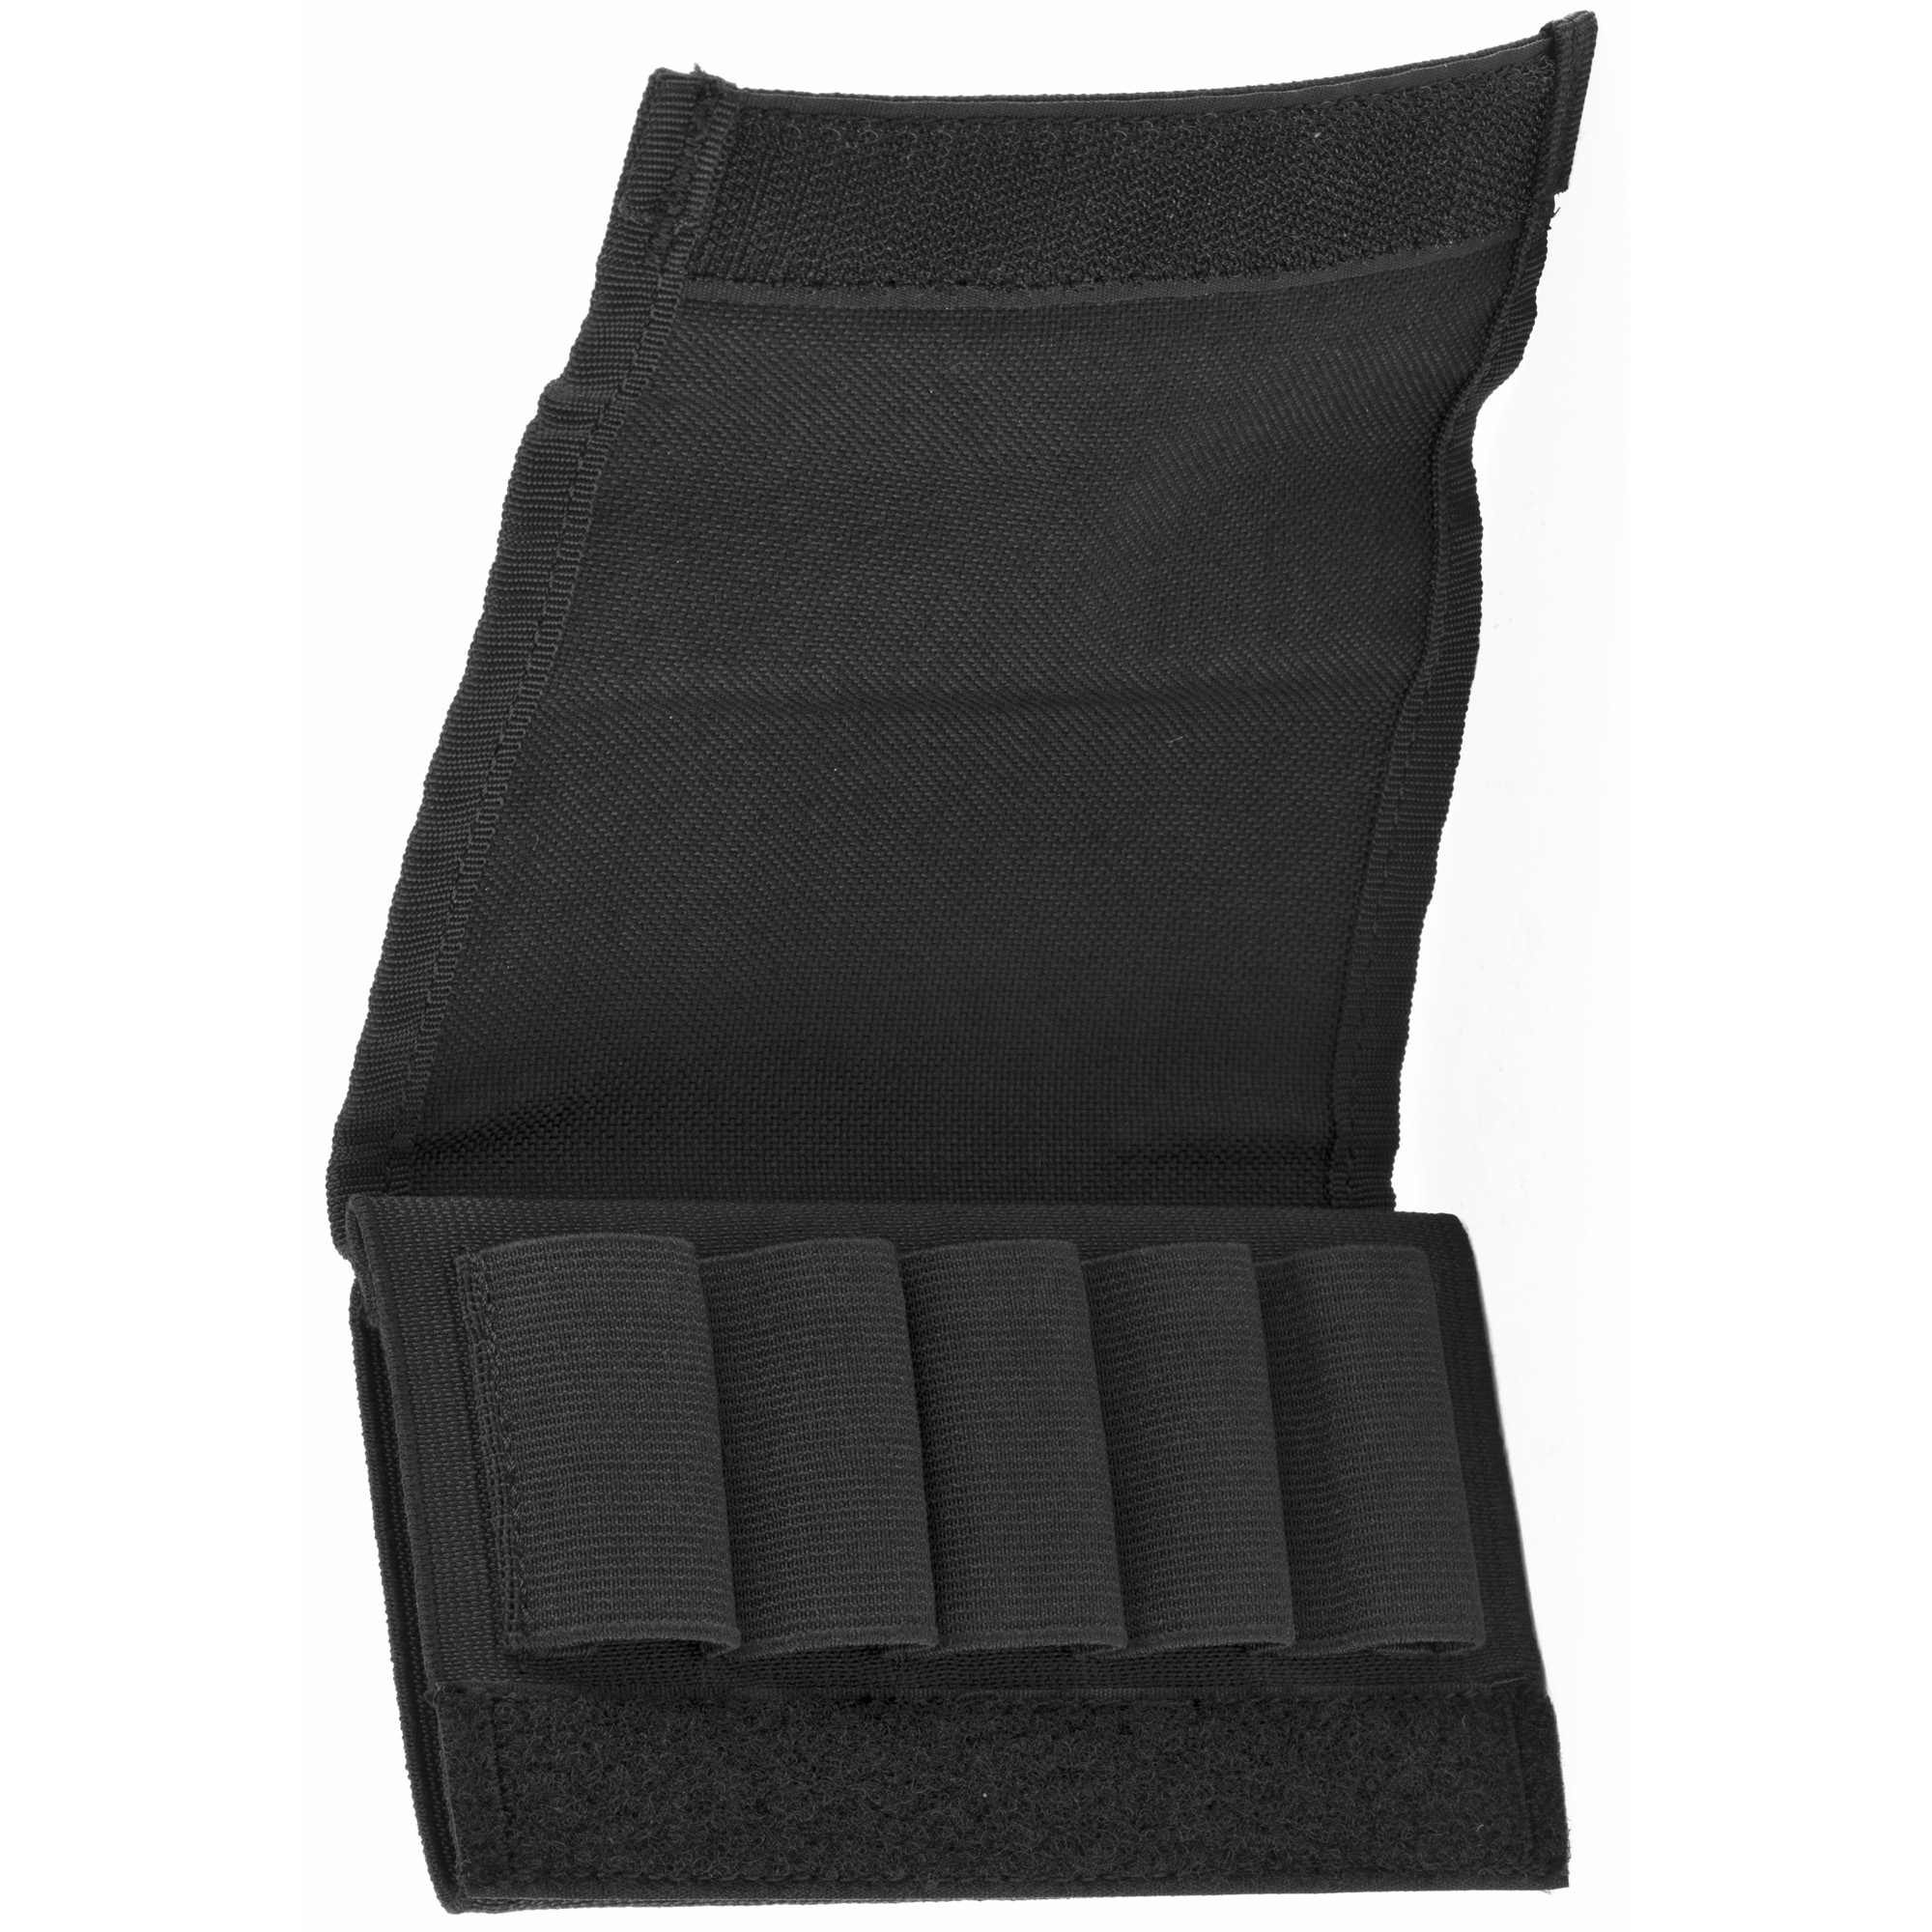 This flap style shotgun buttstock shell holder holds 5 shells. Elastic sleeve quickly secures over shotgun and the sewn-on elastic loops keep 5 shotgun shells in place and organized.